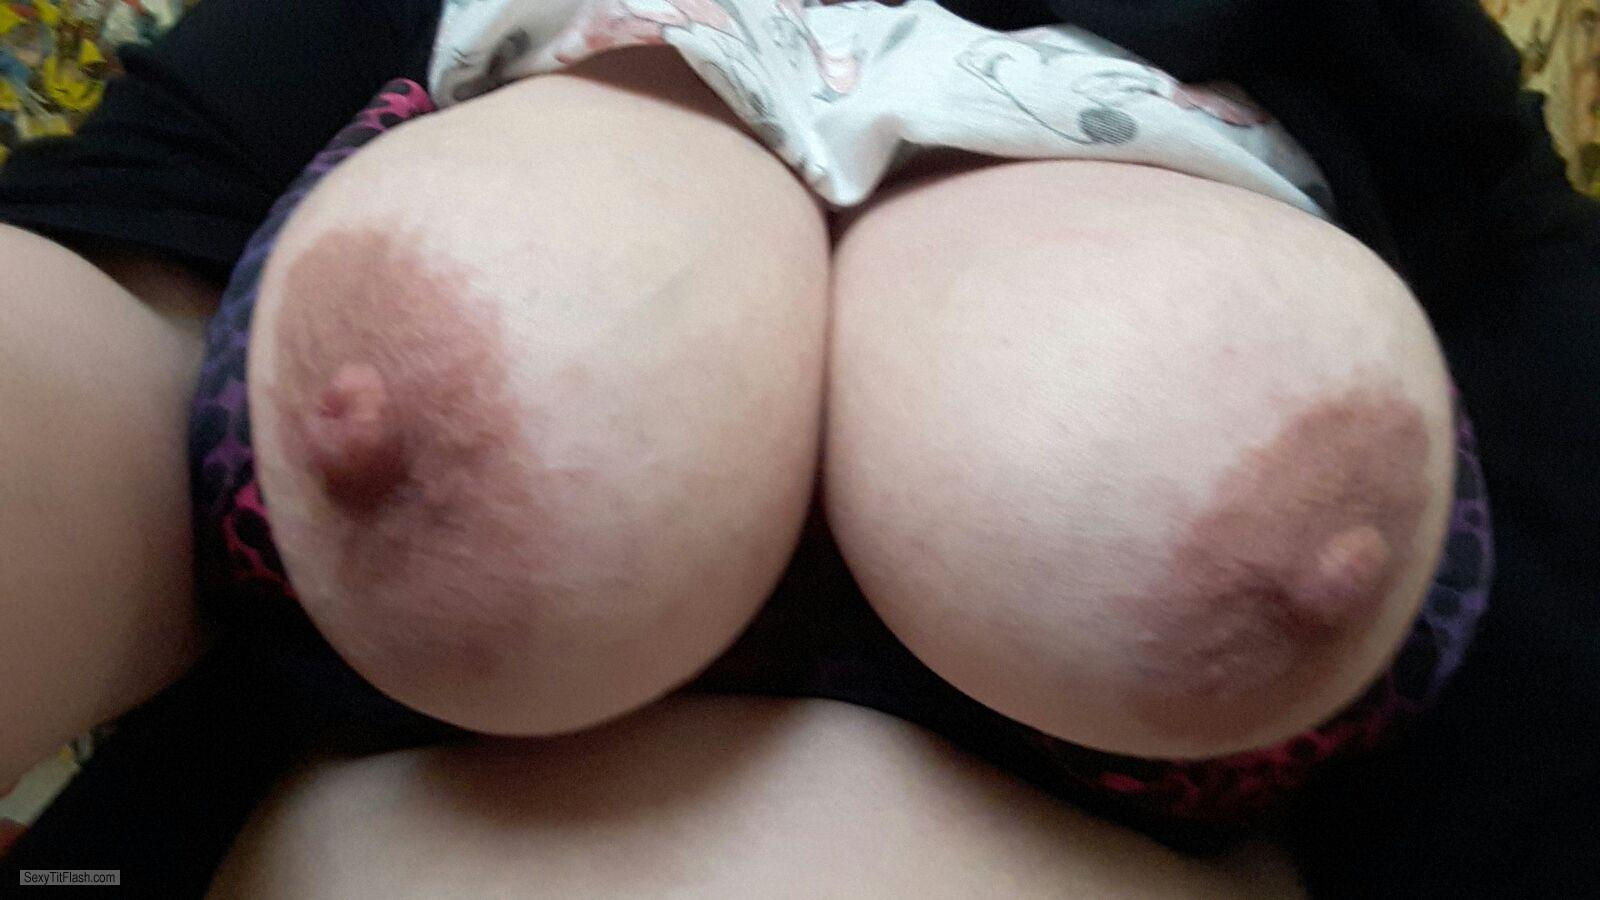 My Very big Tits Potterman75